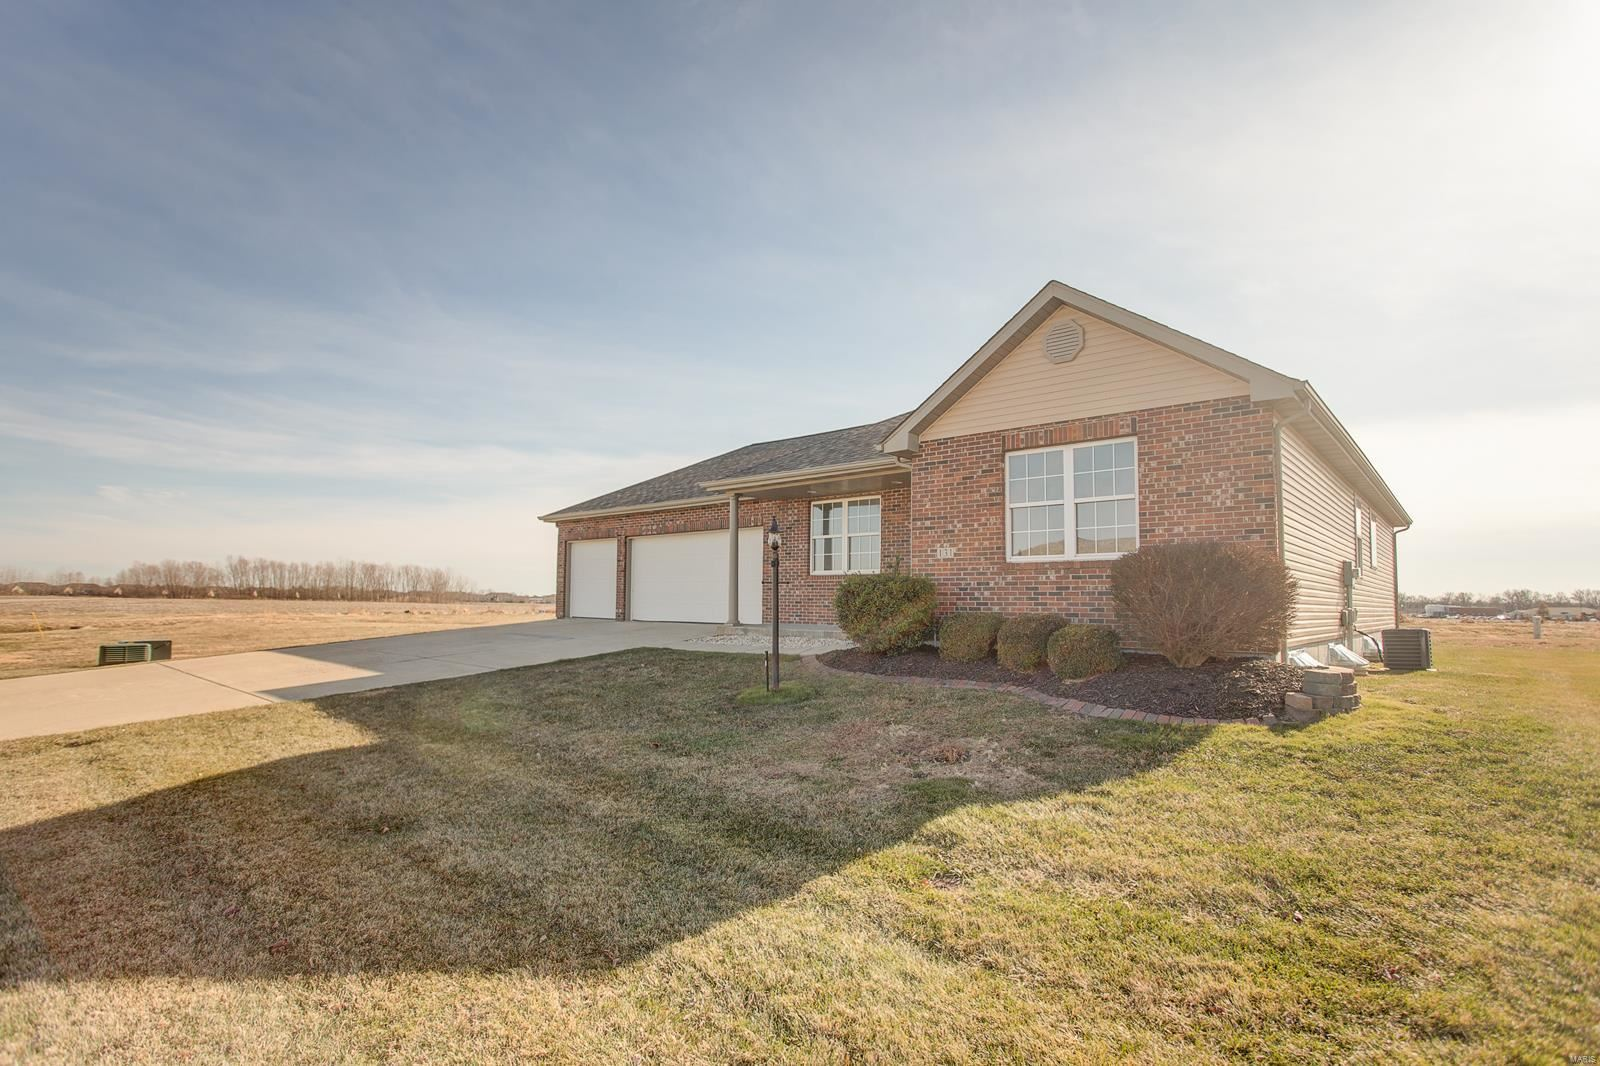 131 George Bush, Troy, IL 62294 - MLS#: 19089123